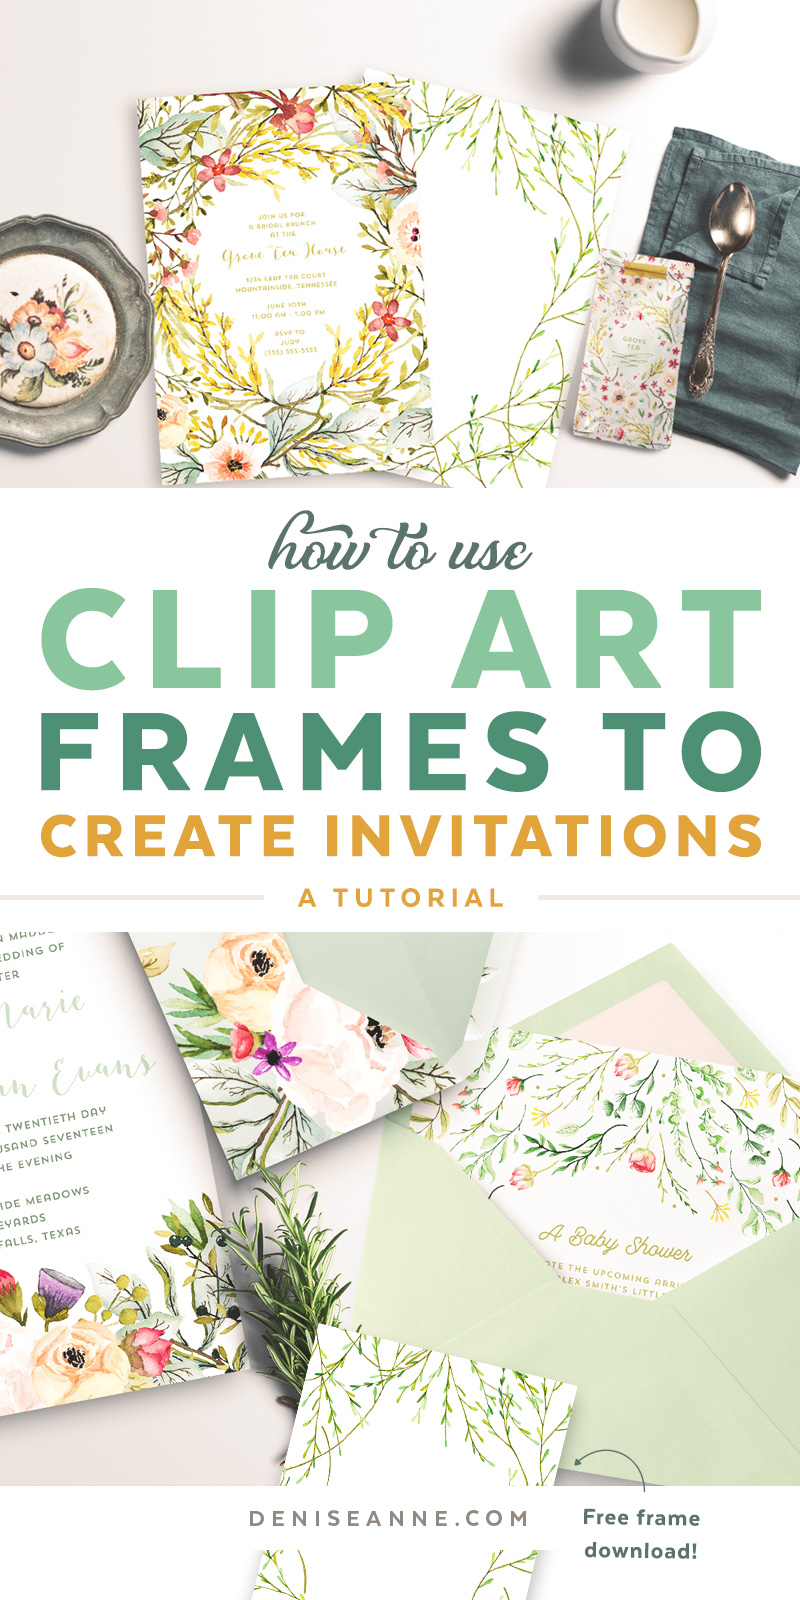 Follow this tutorial on how to use clip art frames to create invitations, and add wording to them in Illustrator. Plus, get a free watercolor graphics frame to try out the tutorial!